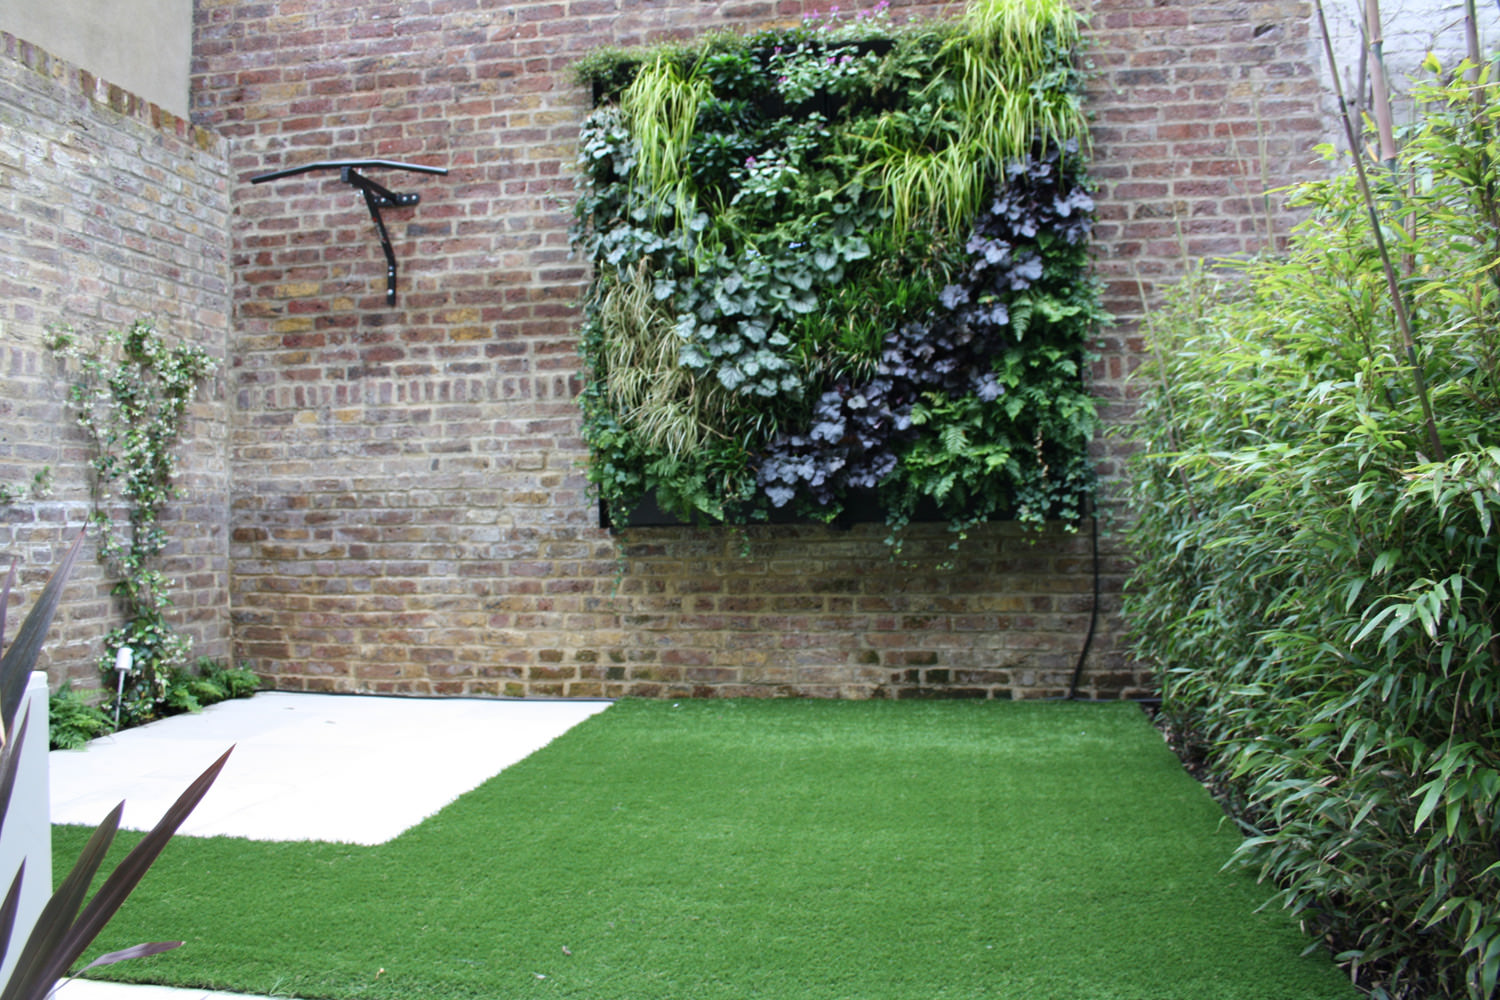 Top 10 london garden designs garden club london for Small garden design uk